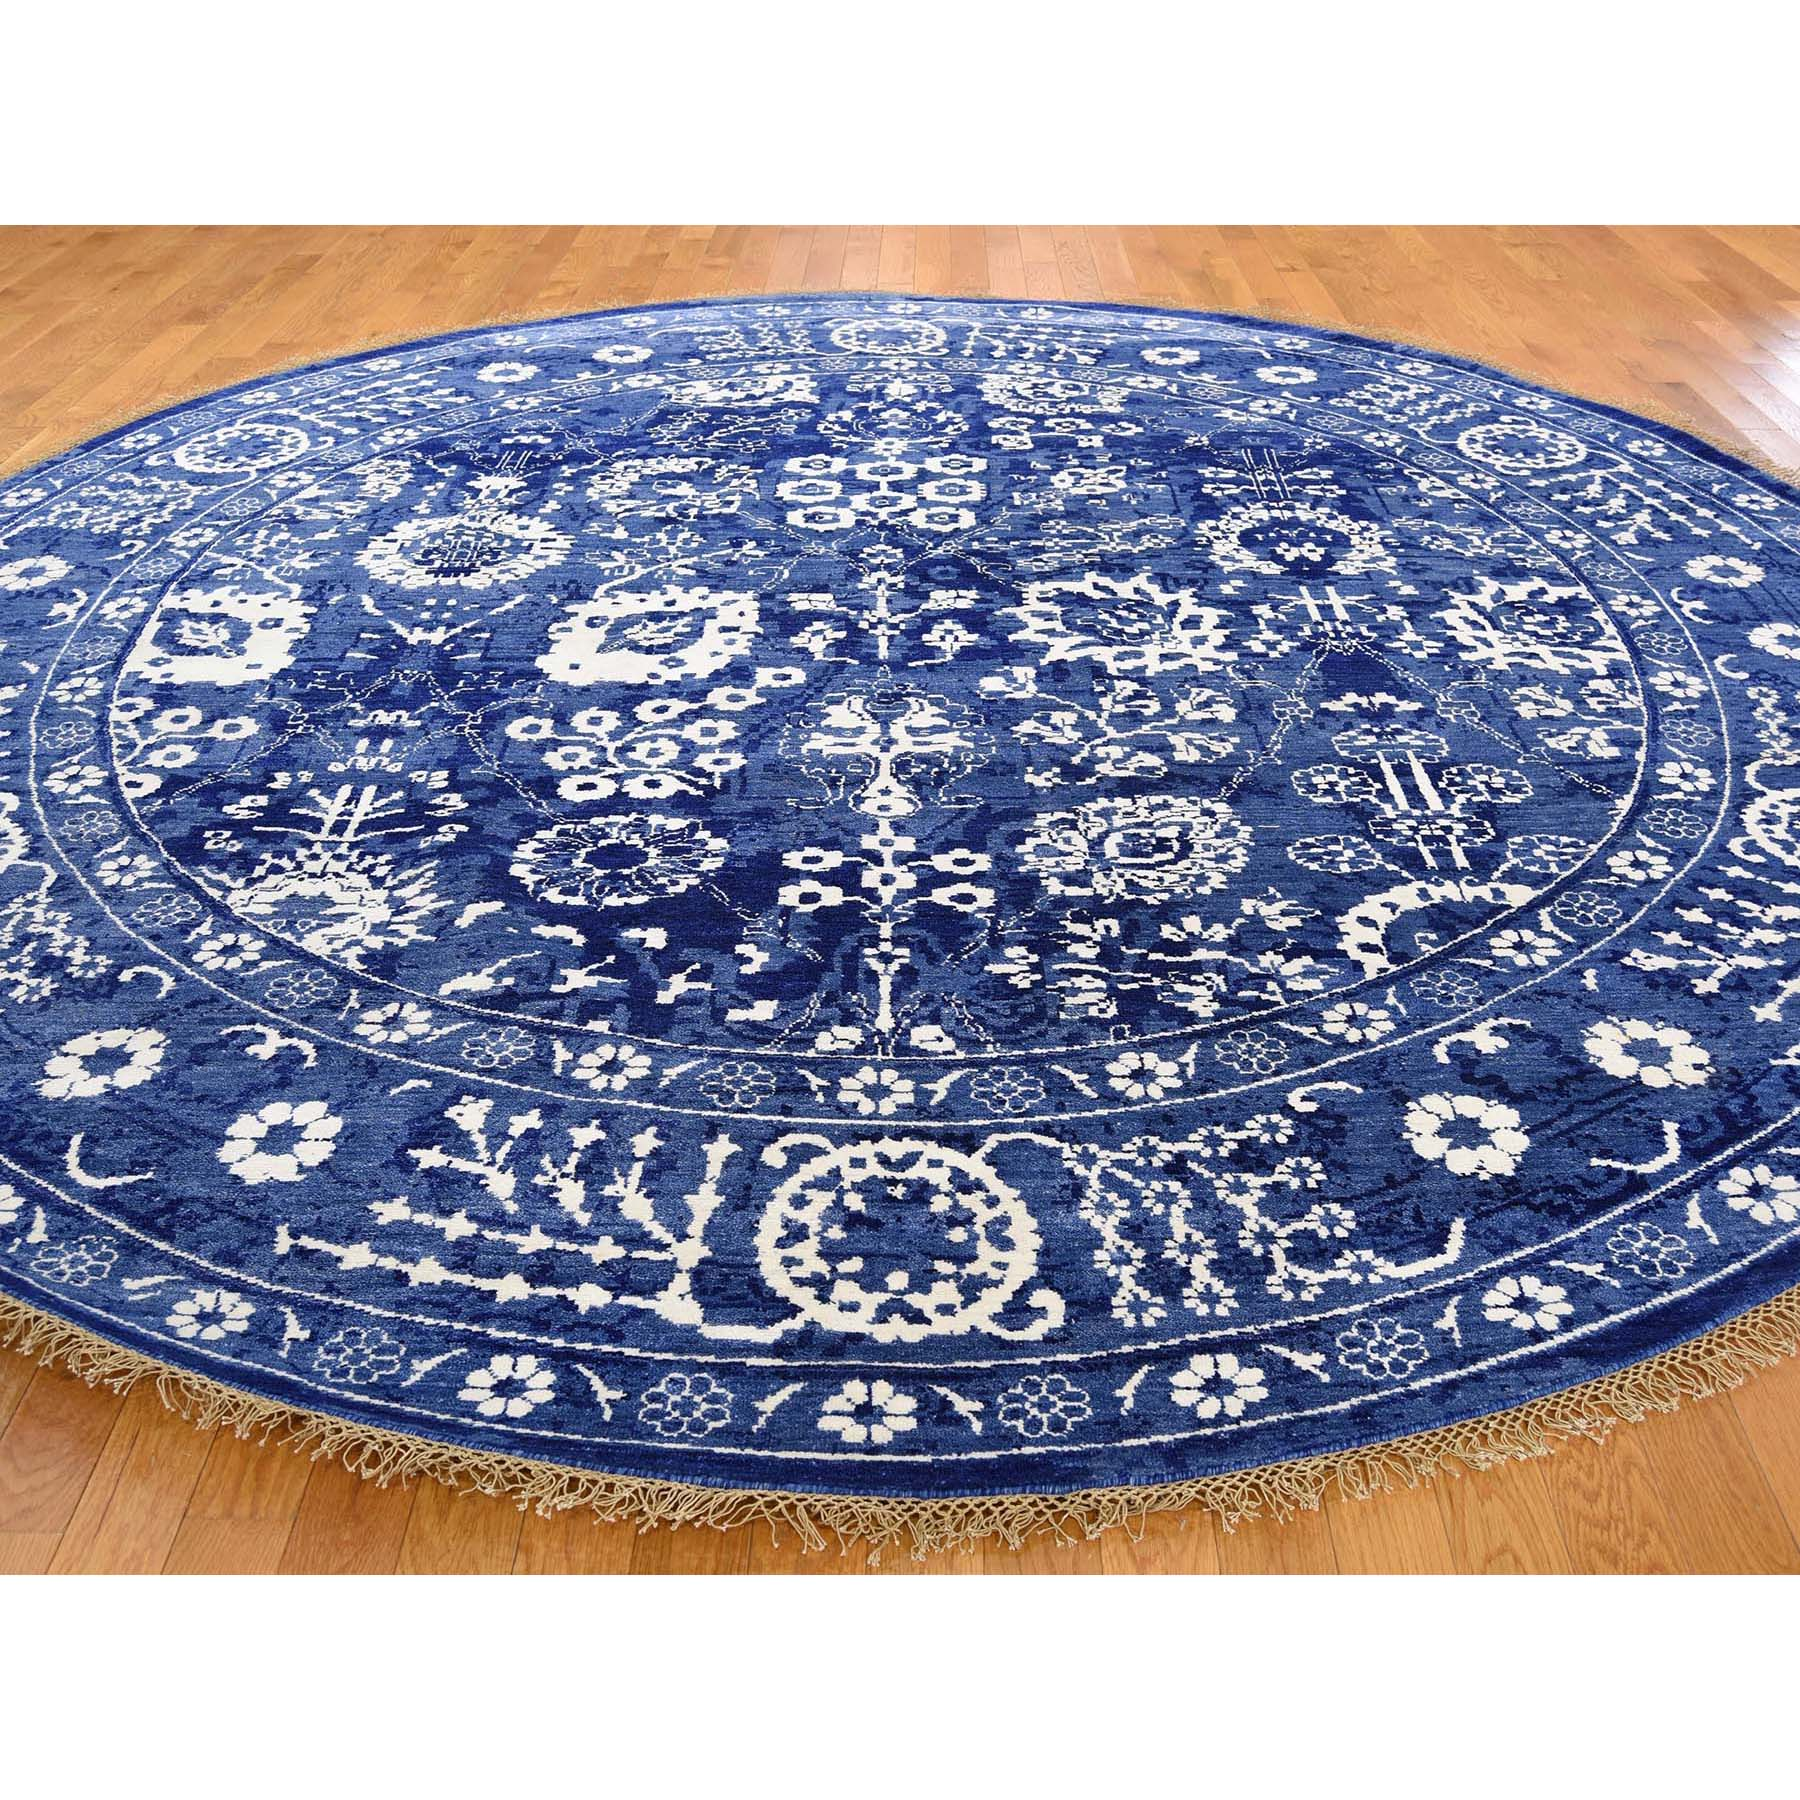 """7'1""""x7'1"""" Hand-Knotted Wool And Silk Round Tone on Tone Tabriz Oriental Rug"""